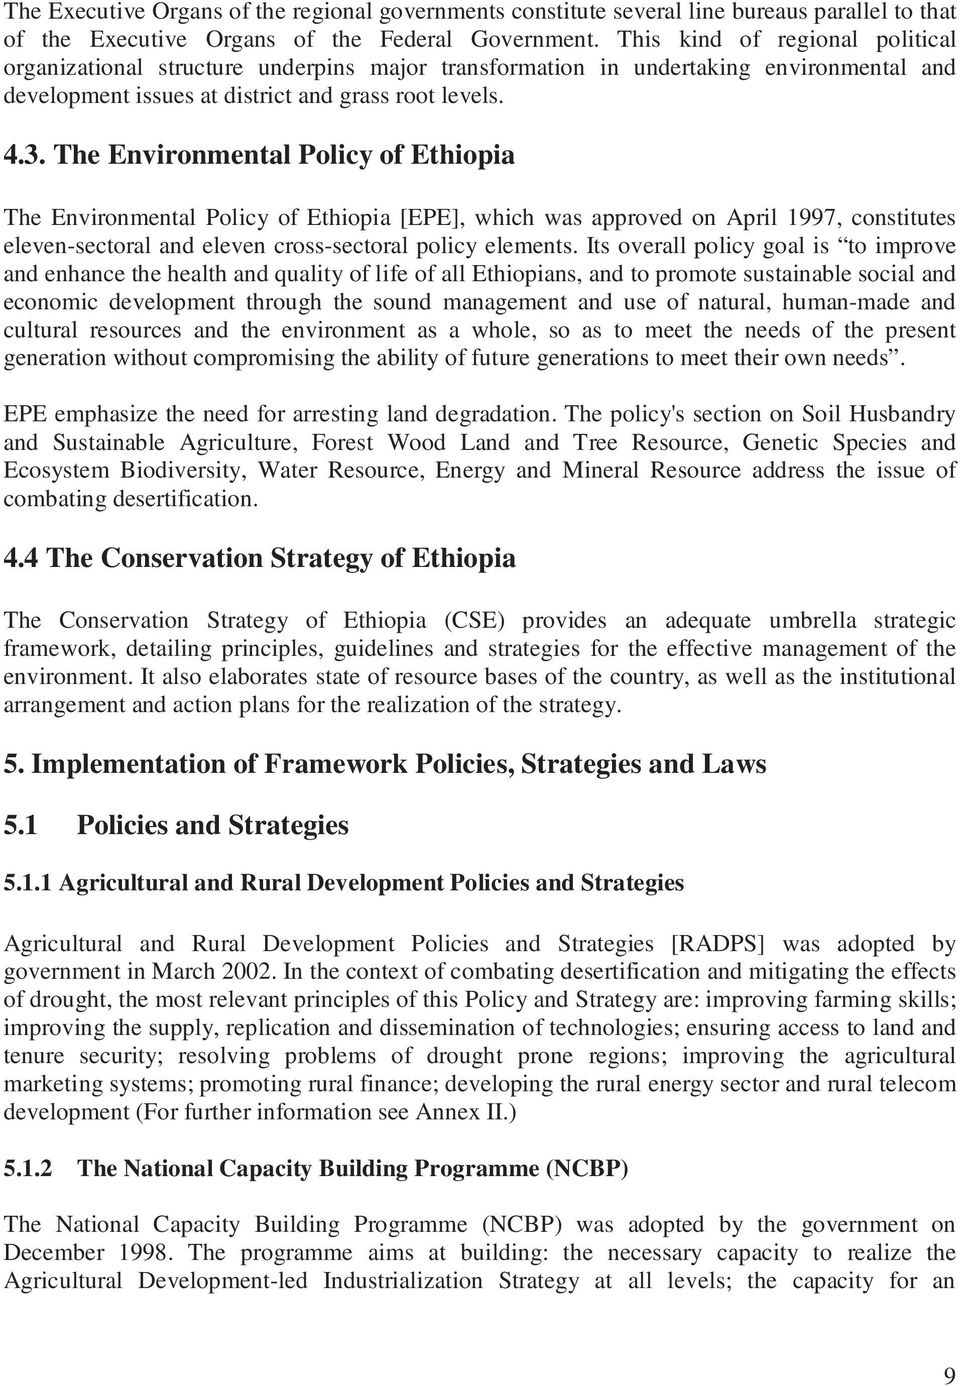 CONSERVATION STRATEGY OF ETHIOPIA EBOOK DOWNLOAD